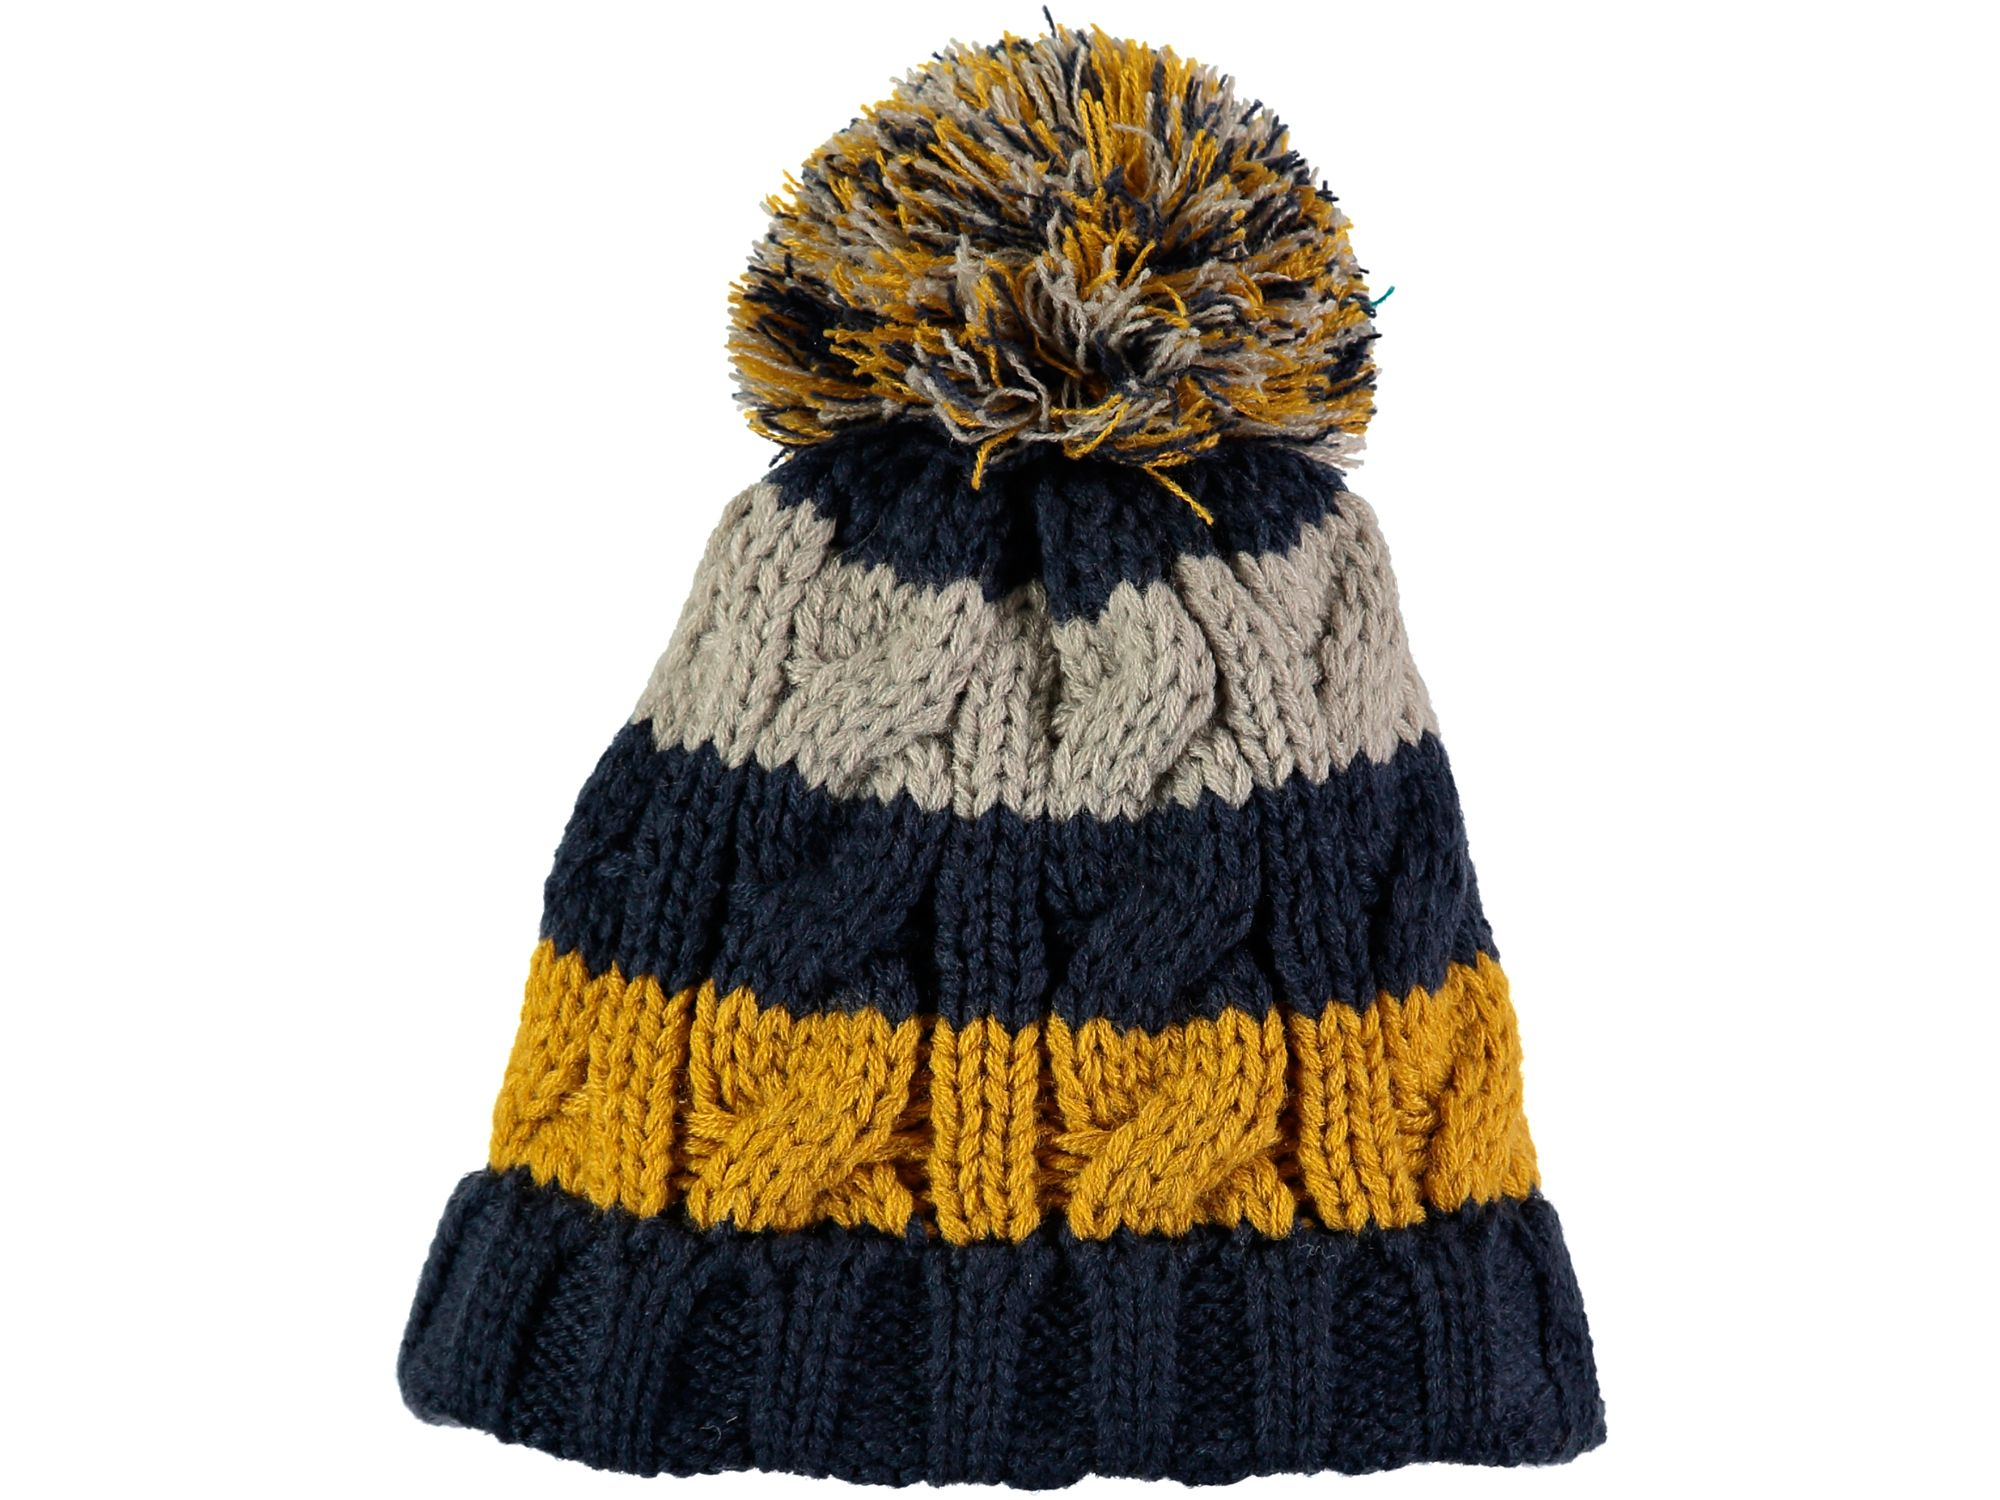 Rockin' Baby Rockin' Baby Navy Stripe Bobble Hat, Multi-Coloured